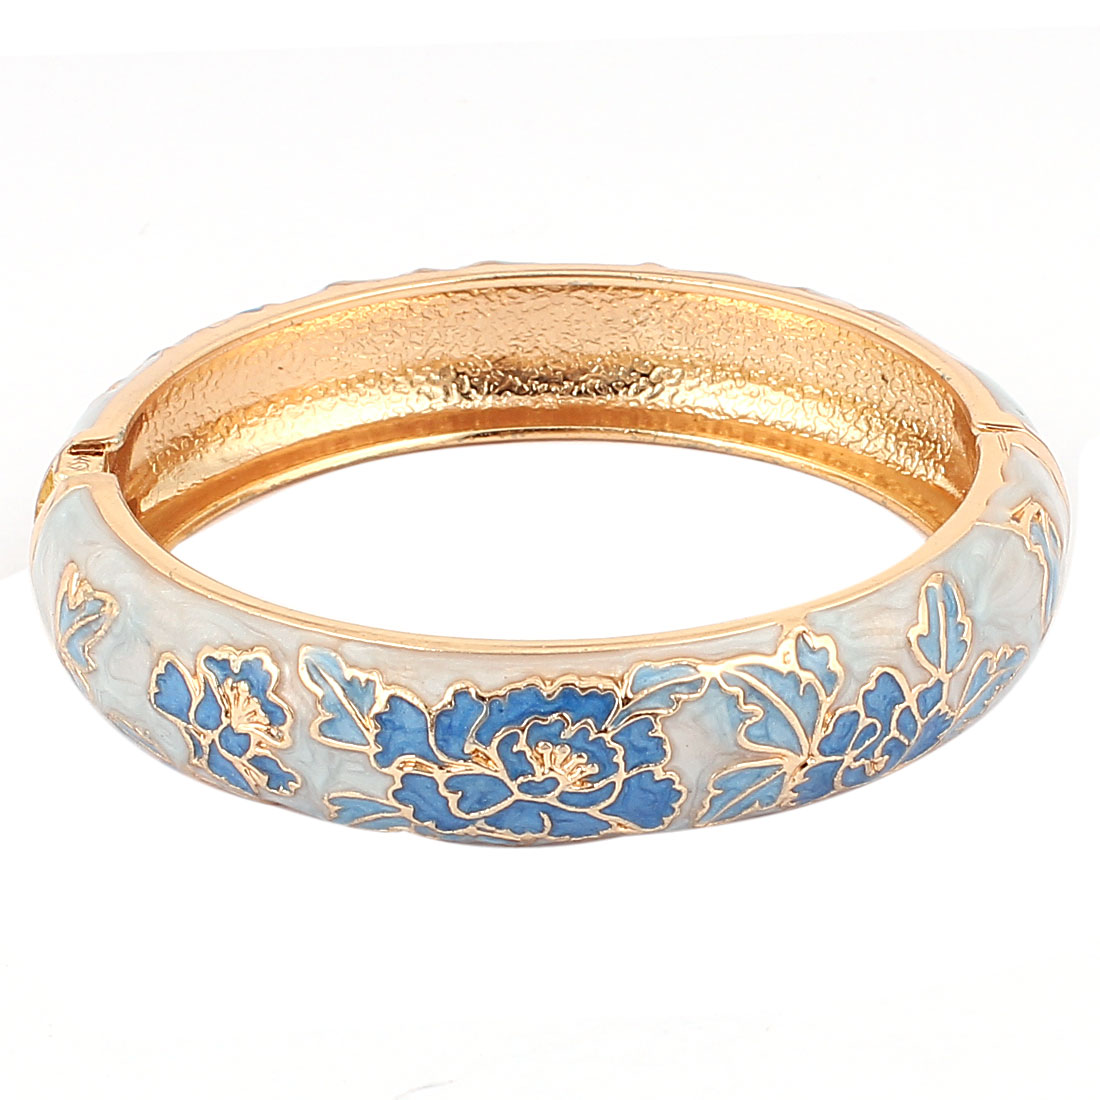 Lady Floral Enamel Gold Plated Spring Open Bangle Bracelet Jewelry